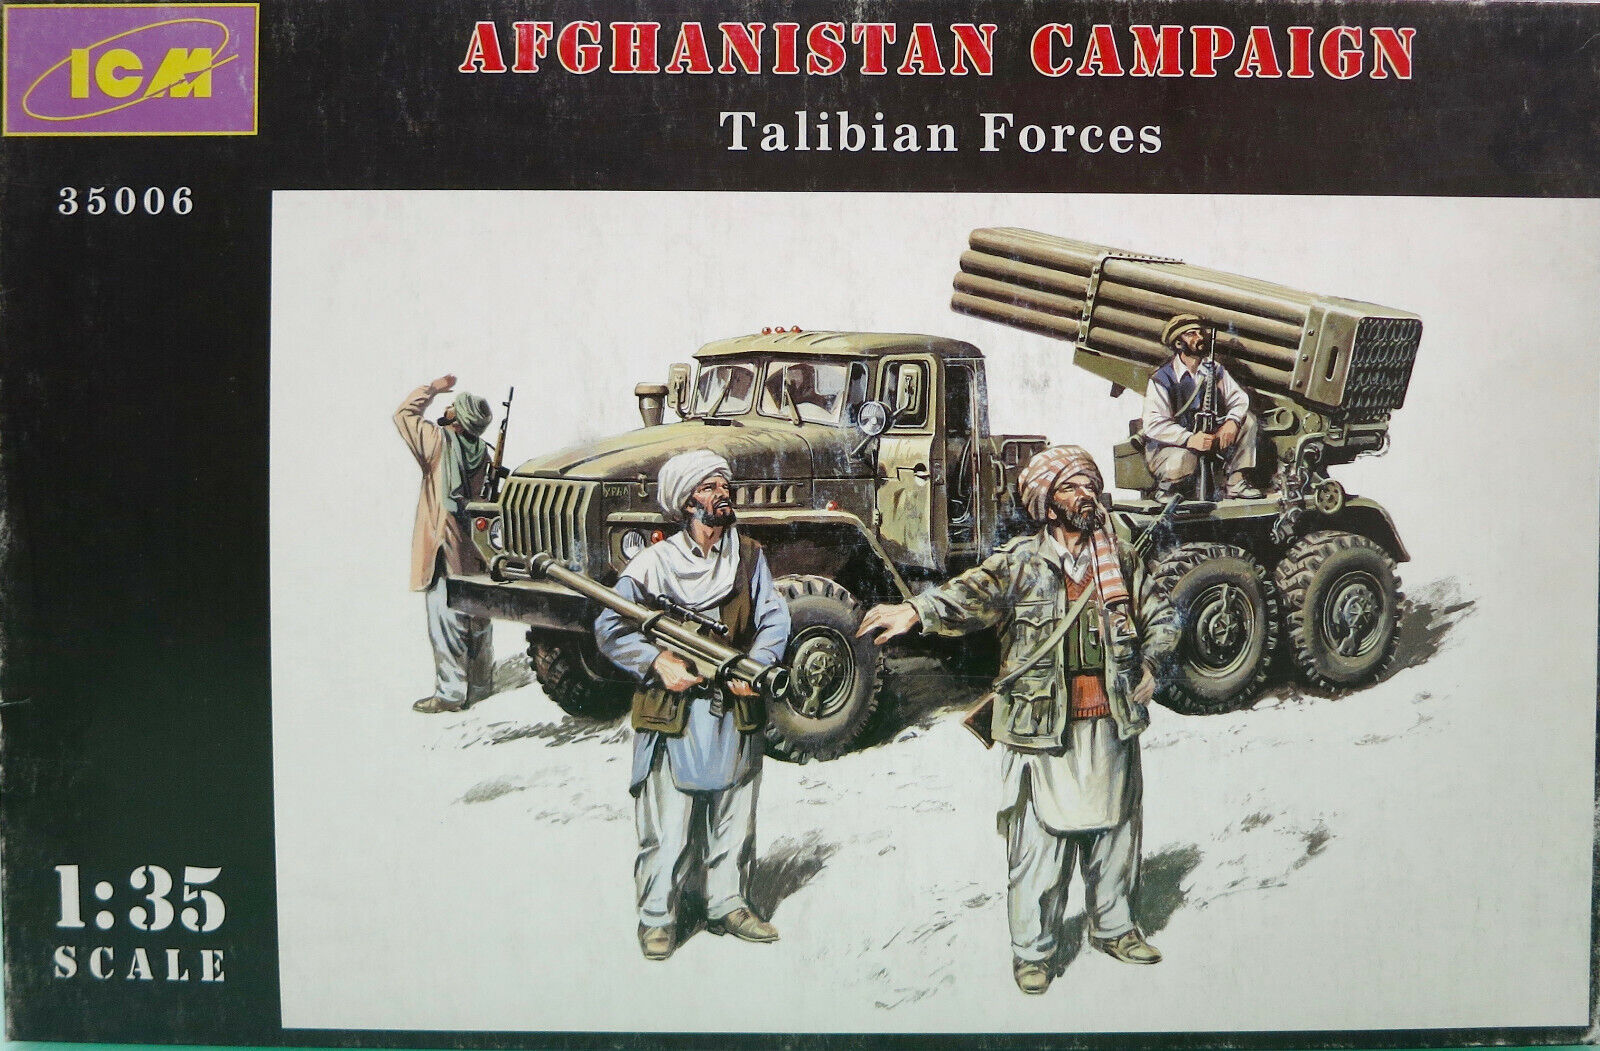 ICM 35006 - AFGHANISTAN CAMPAIGN TALIBIAN FORCES - MODEL KIT SCALA 1 35